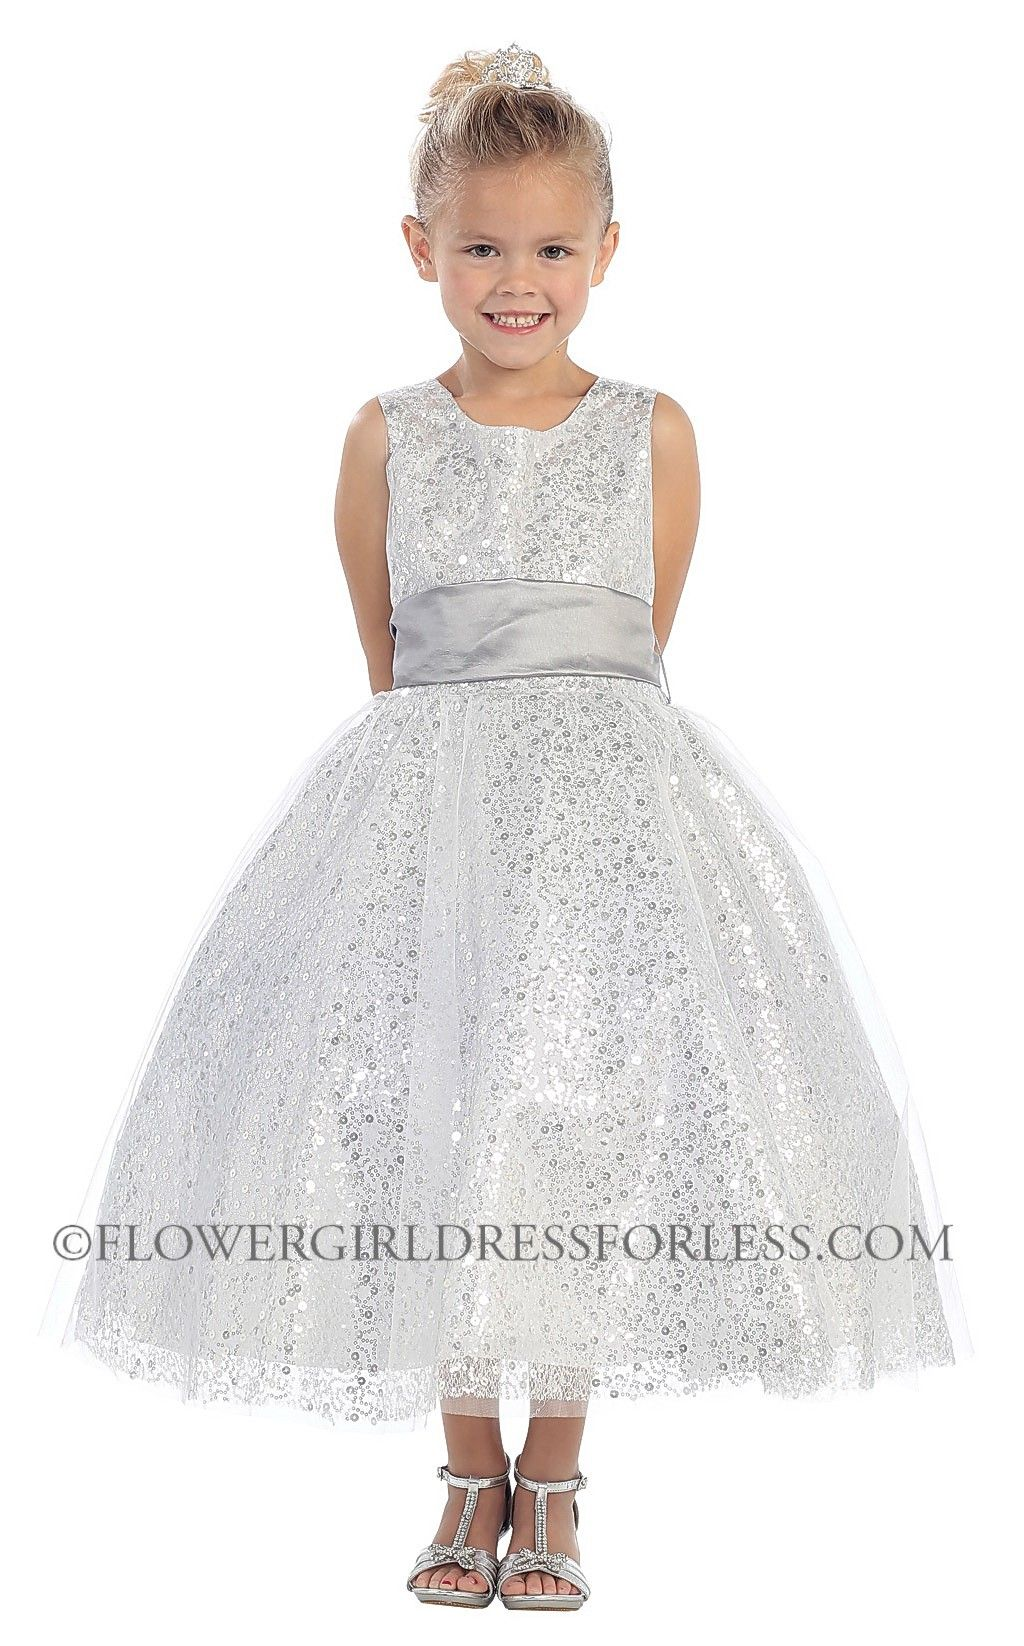 Girls Dress Style 5573- Sleeveless Tulle and Sequin Dress $68.99